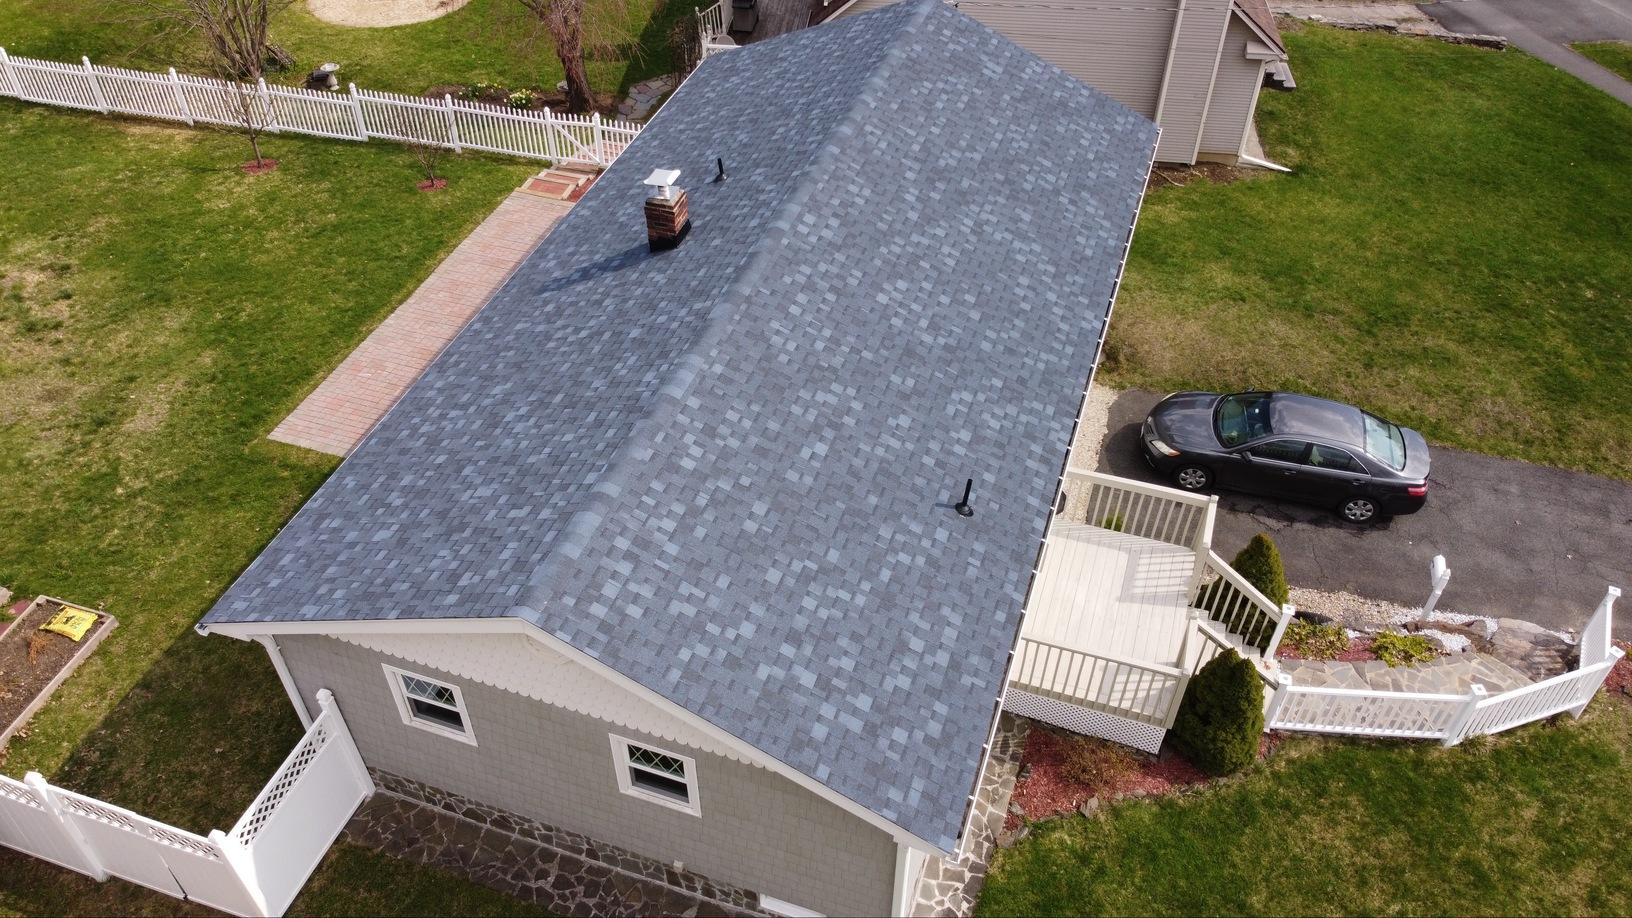 Lenox, MA Roof Replacement IKO Dynasty Atlantic Blue Shingles - After Photo